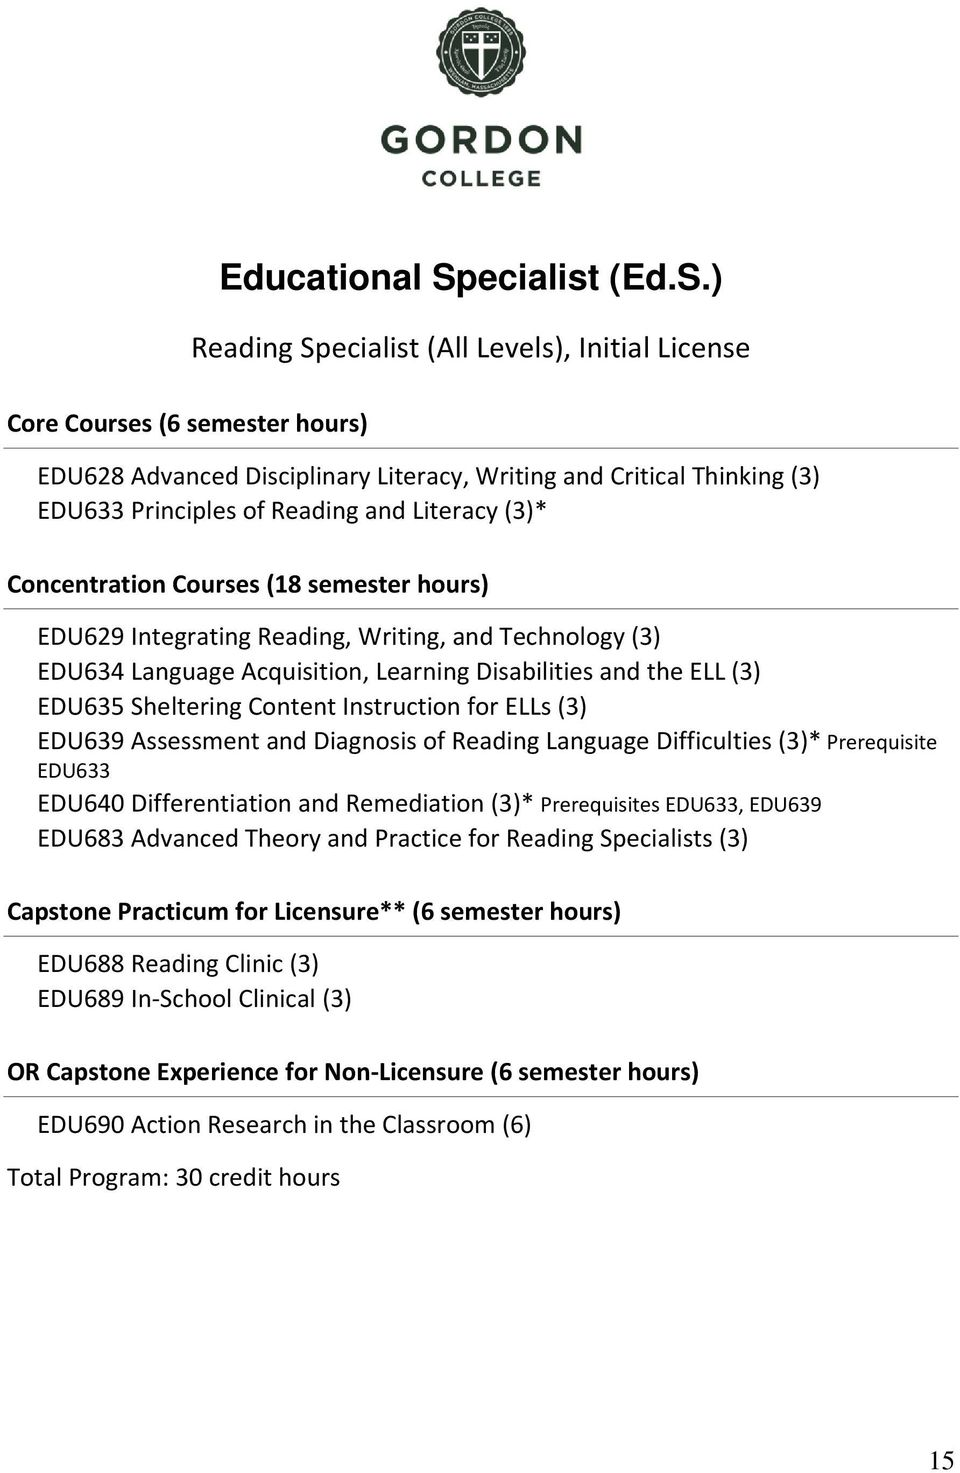 ) Reading Specialist (All Levels), Initial License EDU628 Advanced Disciplinary Literacy, Writing and Critical Thinking (3) EDU633 Principles of Reading and Literacy (3)* Concentration Courses (8